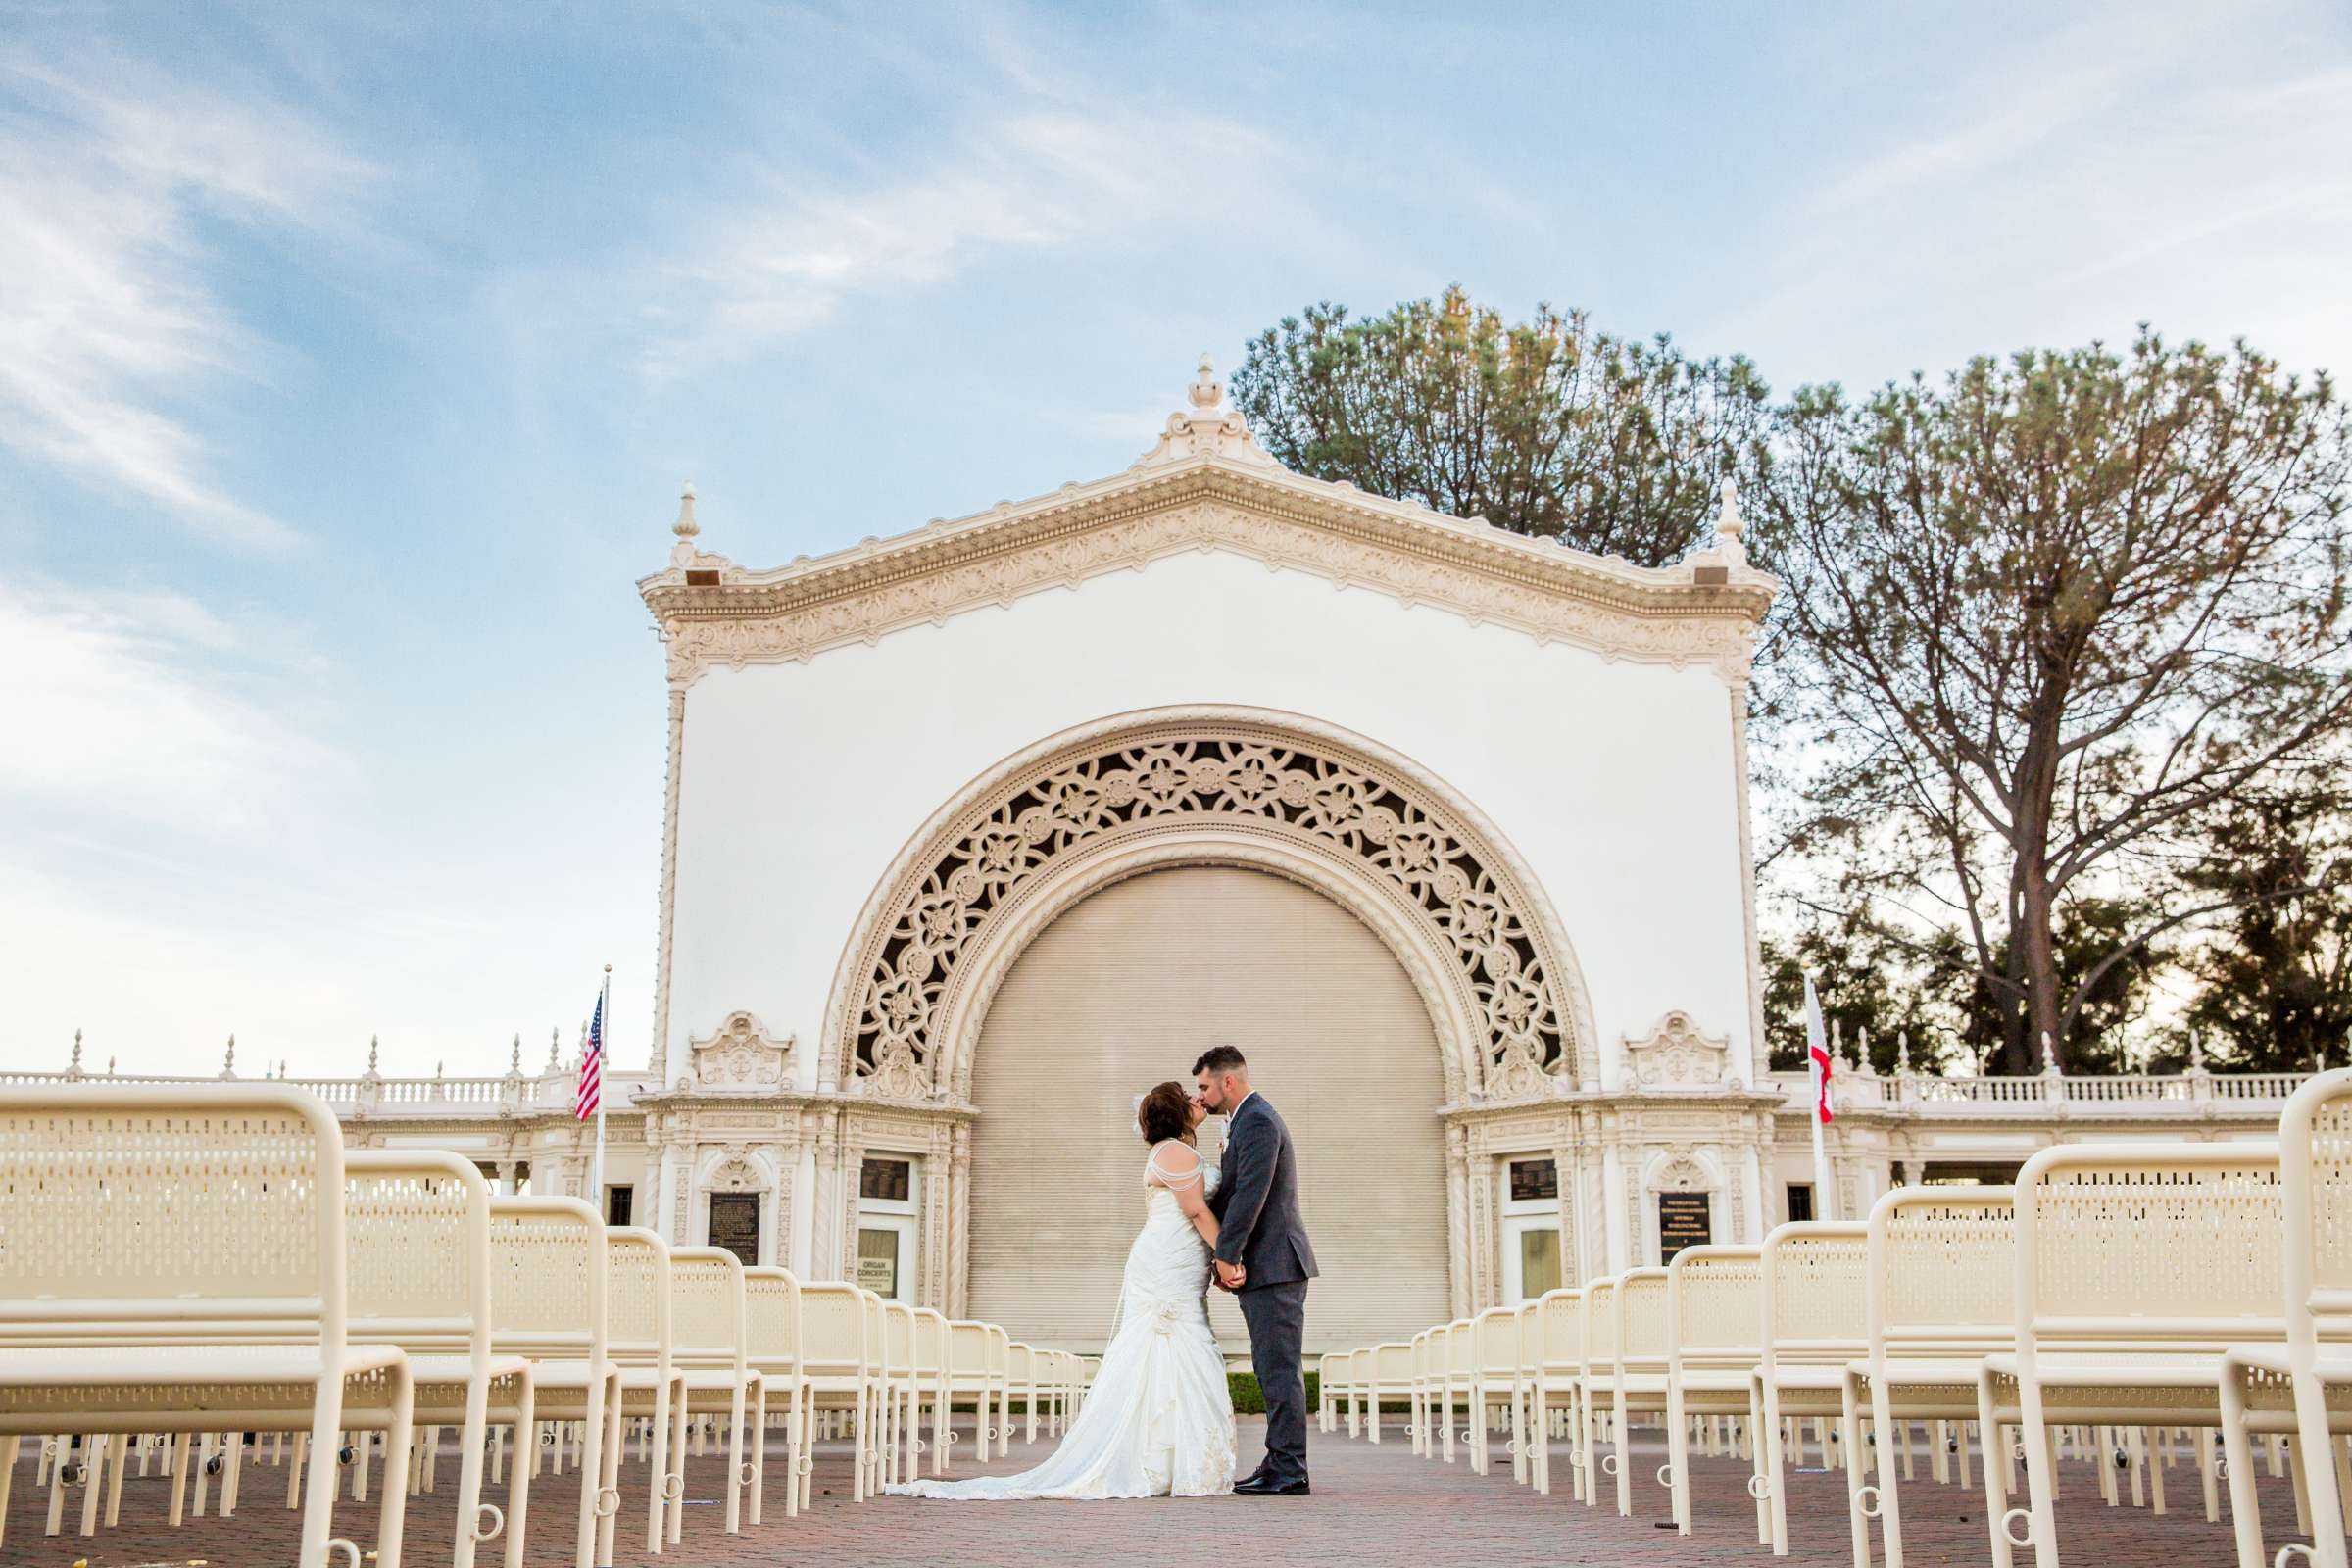 The Prado Wedding coordinated by Breezy Day Weddings, Aalis and Michael Wedding Photo #20 by True Photography